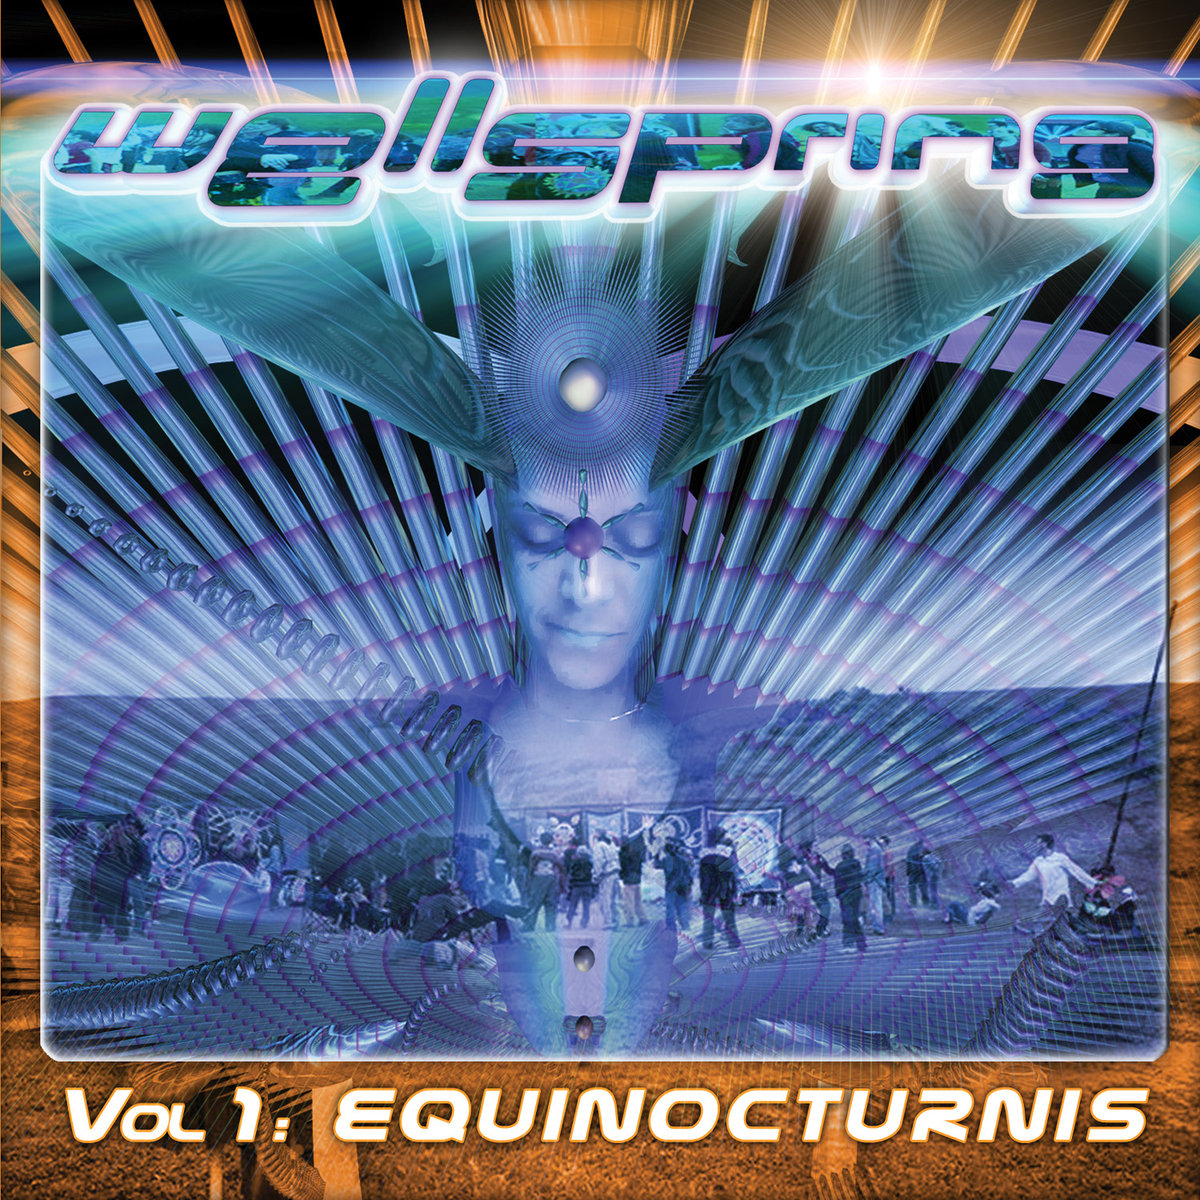 Chromatone & Helios - New Conciousness @ 'Various Artists - Wellspring Vol. 1: Equinocturnis' album (electronic, goa)